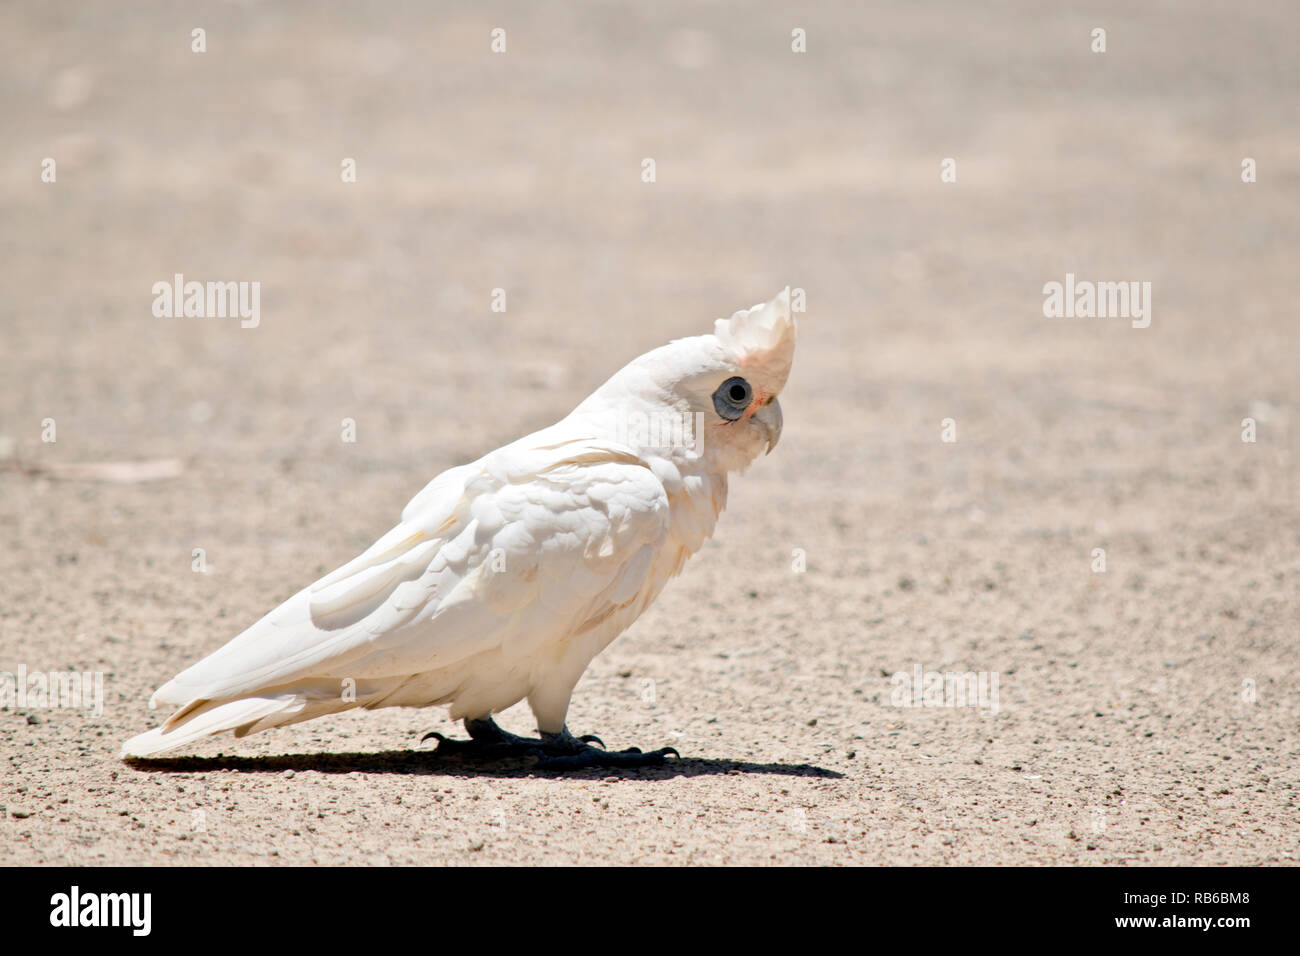 the little corella is eating seeds off the ground - Stock Image